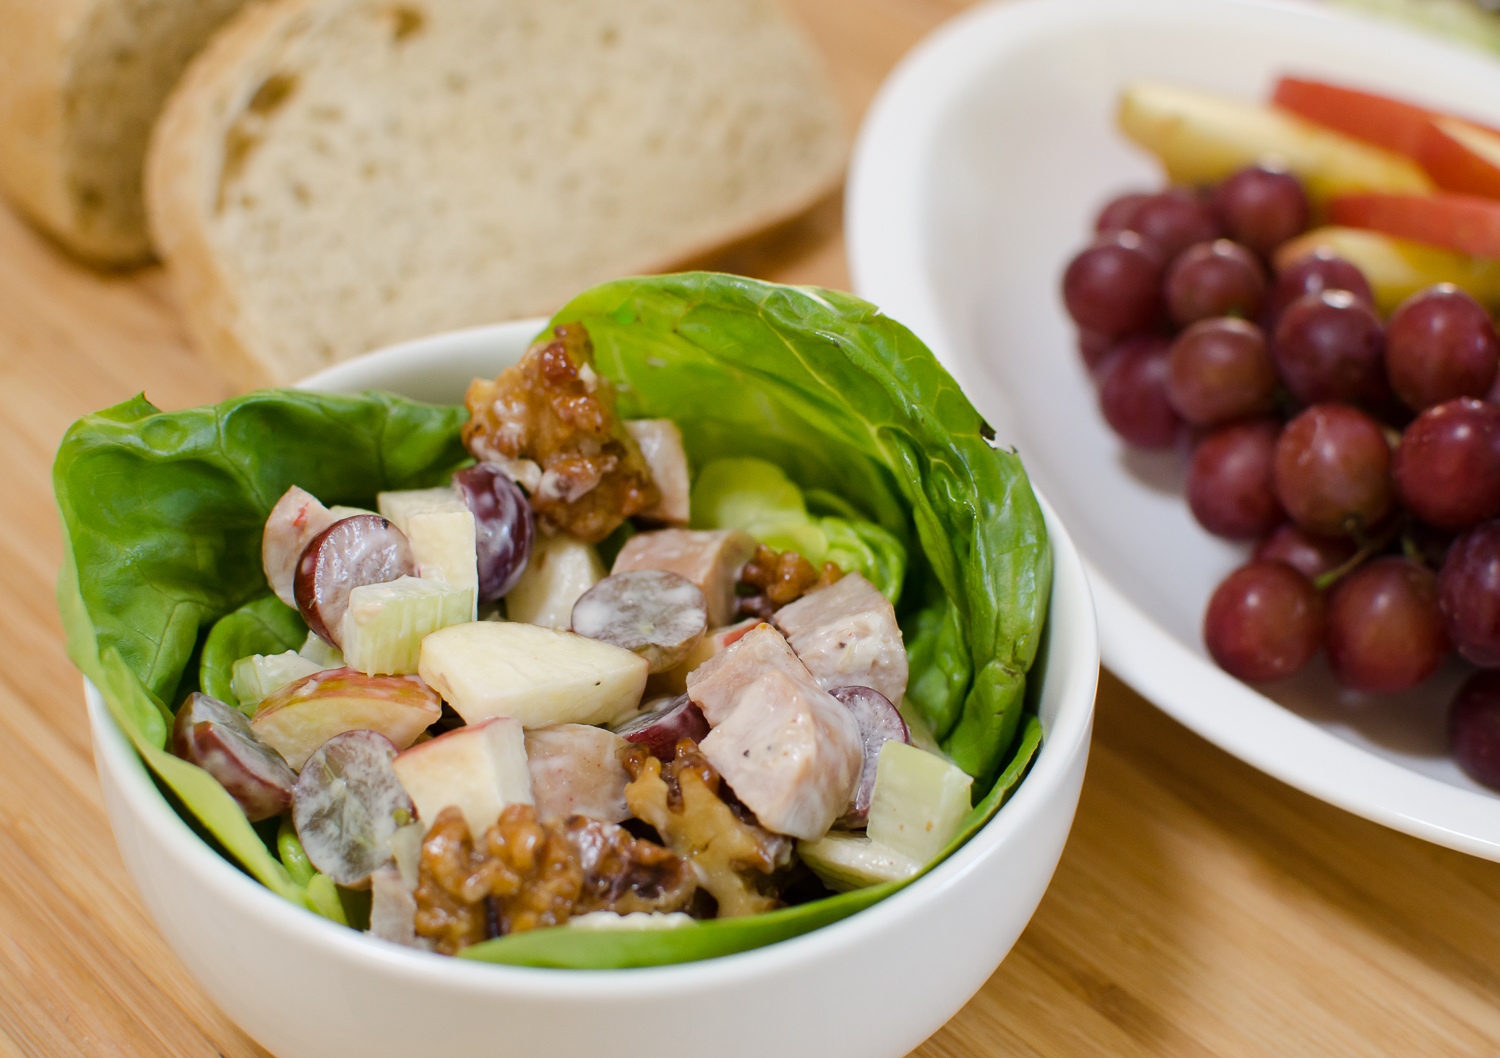 Simple Chicken Waldorf Salad with Candied Walnuts